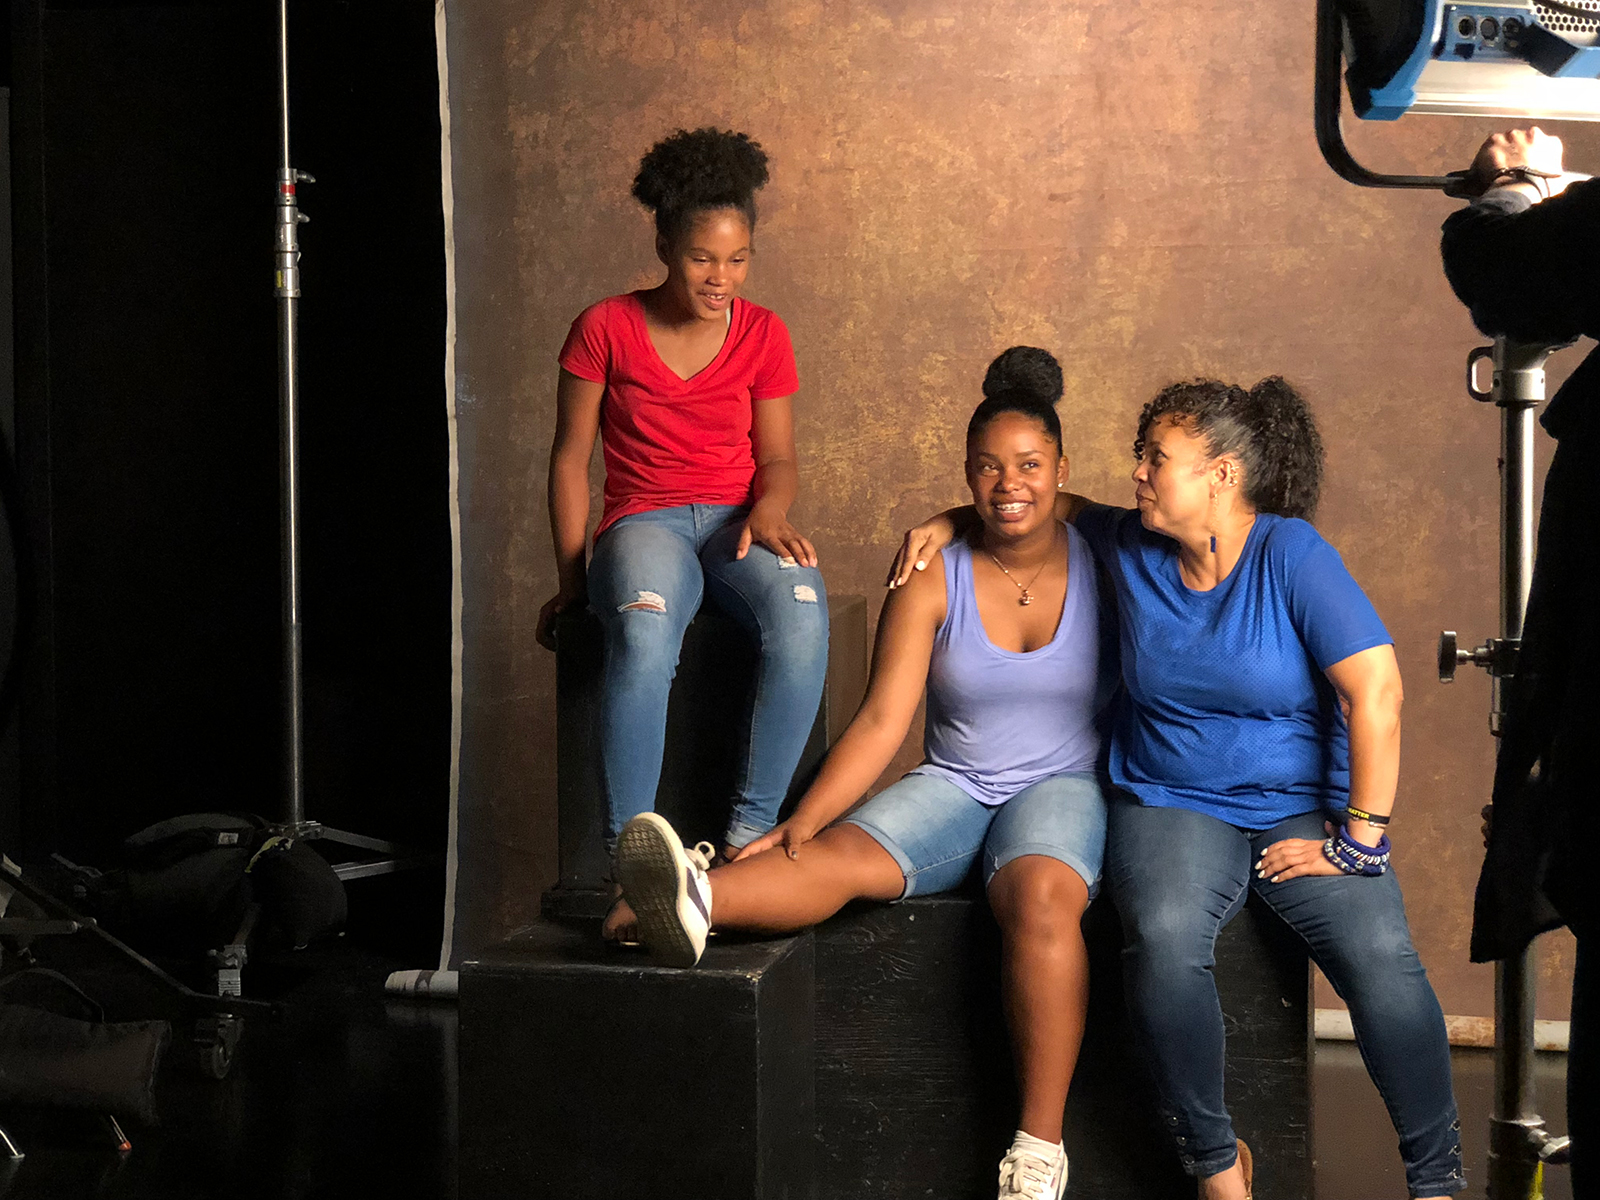 How one documentary reframes the history of Black women